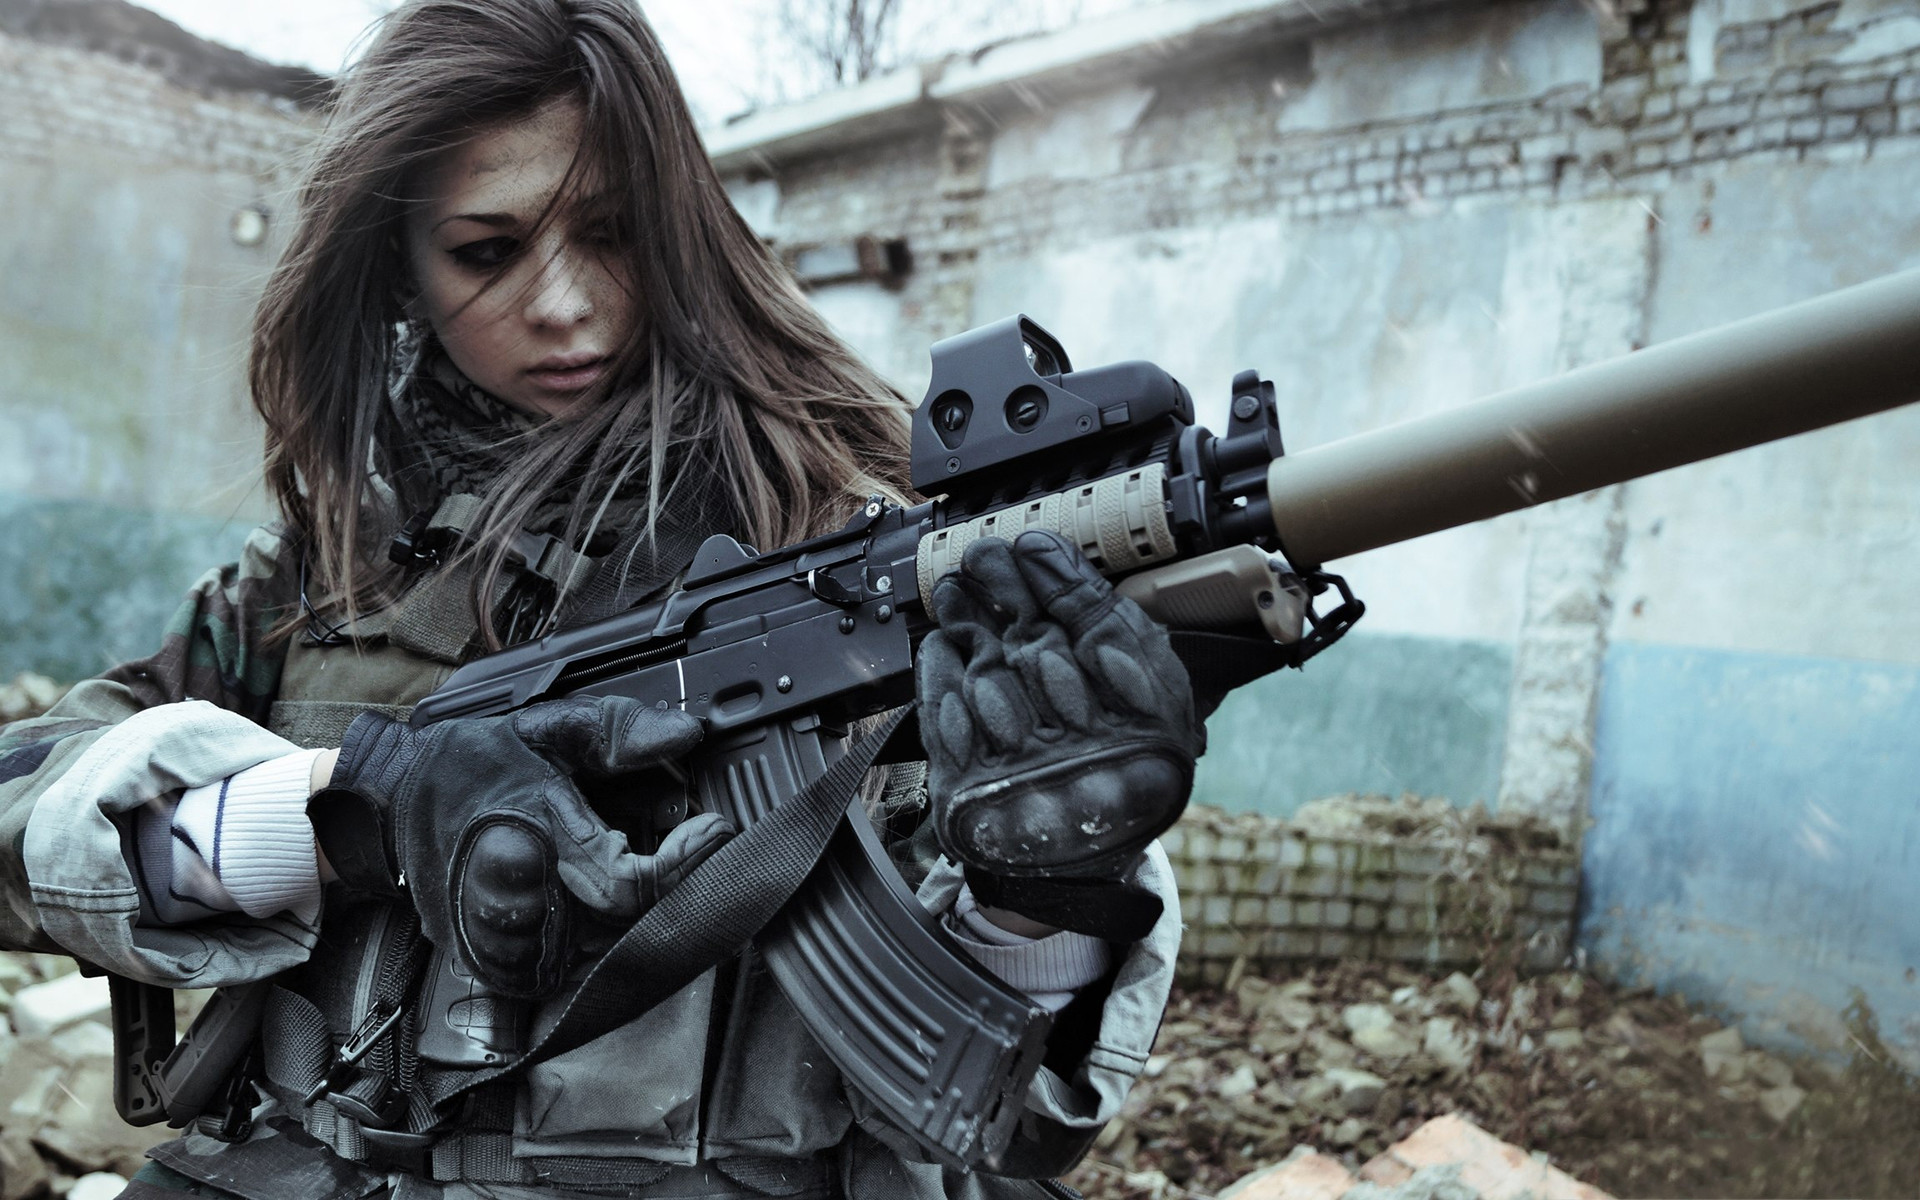 1920x1200 women soldiers war guns girls with guns airsoft Magpul eotech AKM silencer  carbine holographic suppressor AK - Wallpaper ( / Wallbase.